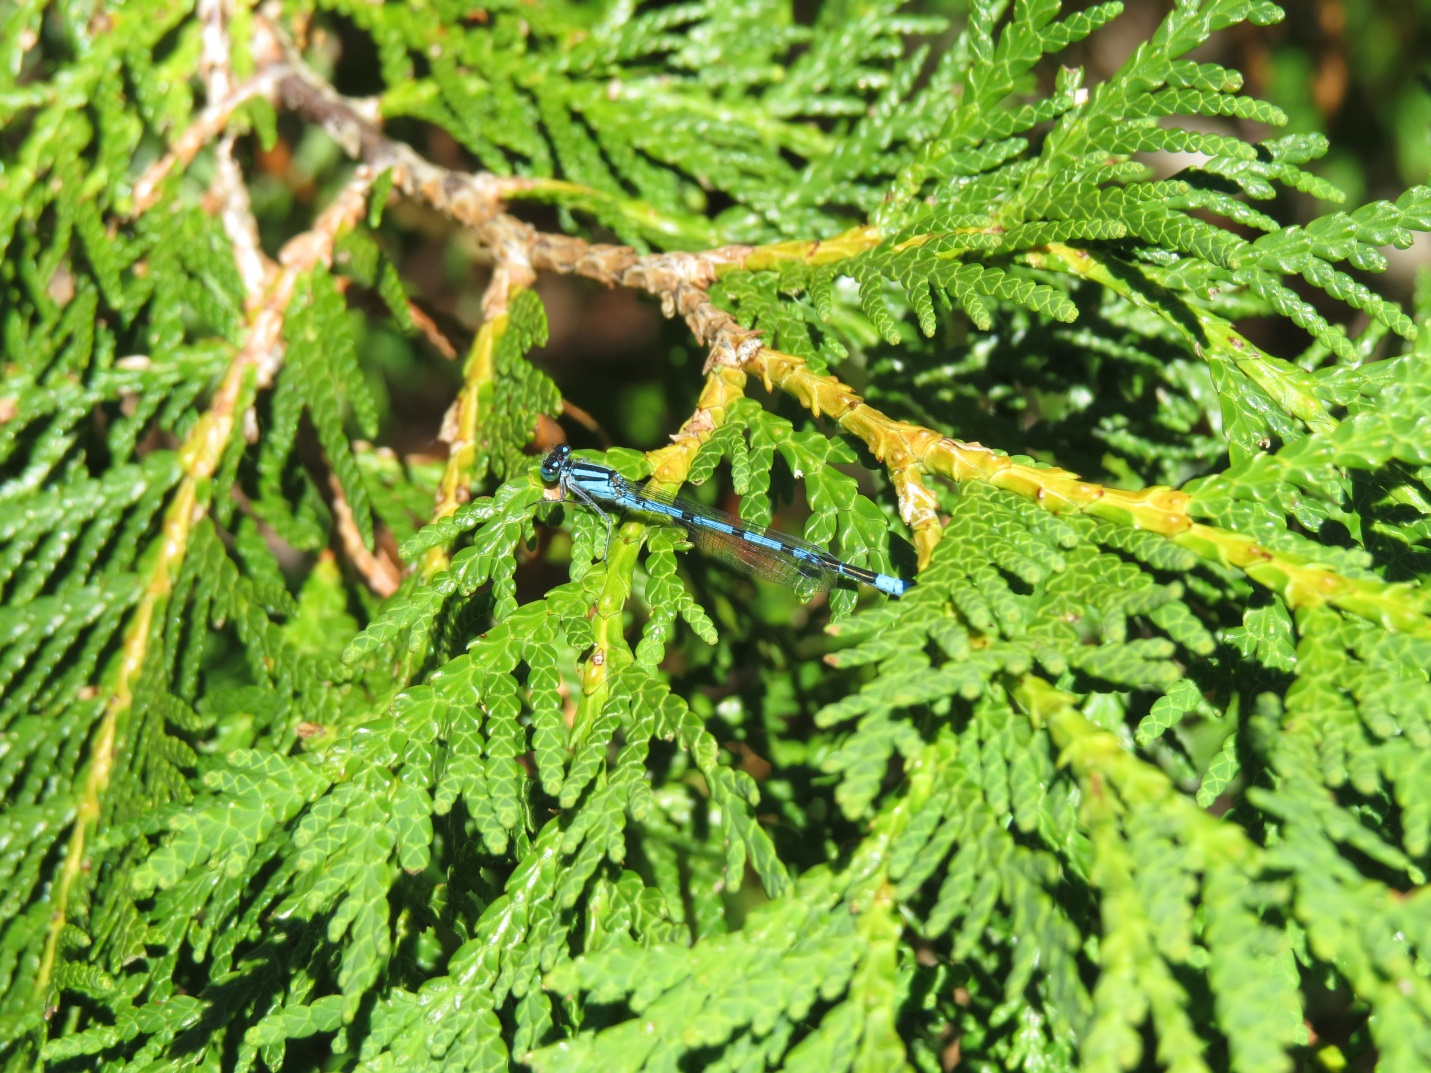 An adult damselfly found on vegetation around one of the bogs we sampled at Bruce Peninsula National Park.